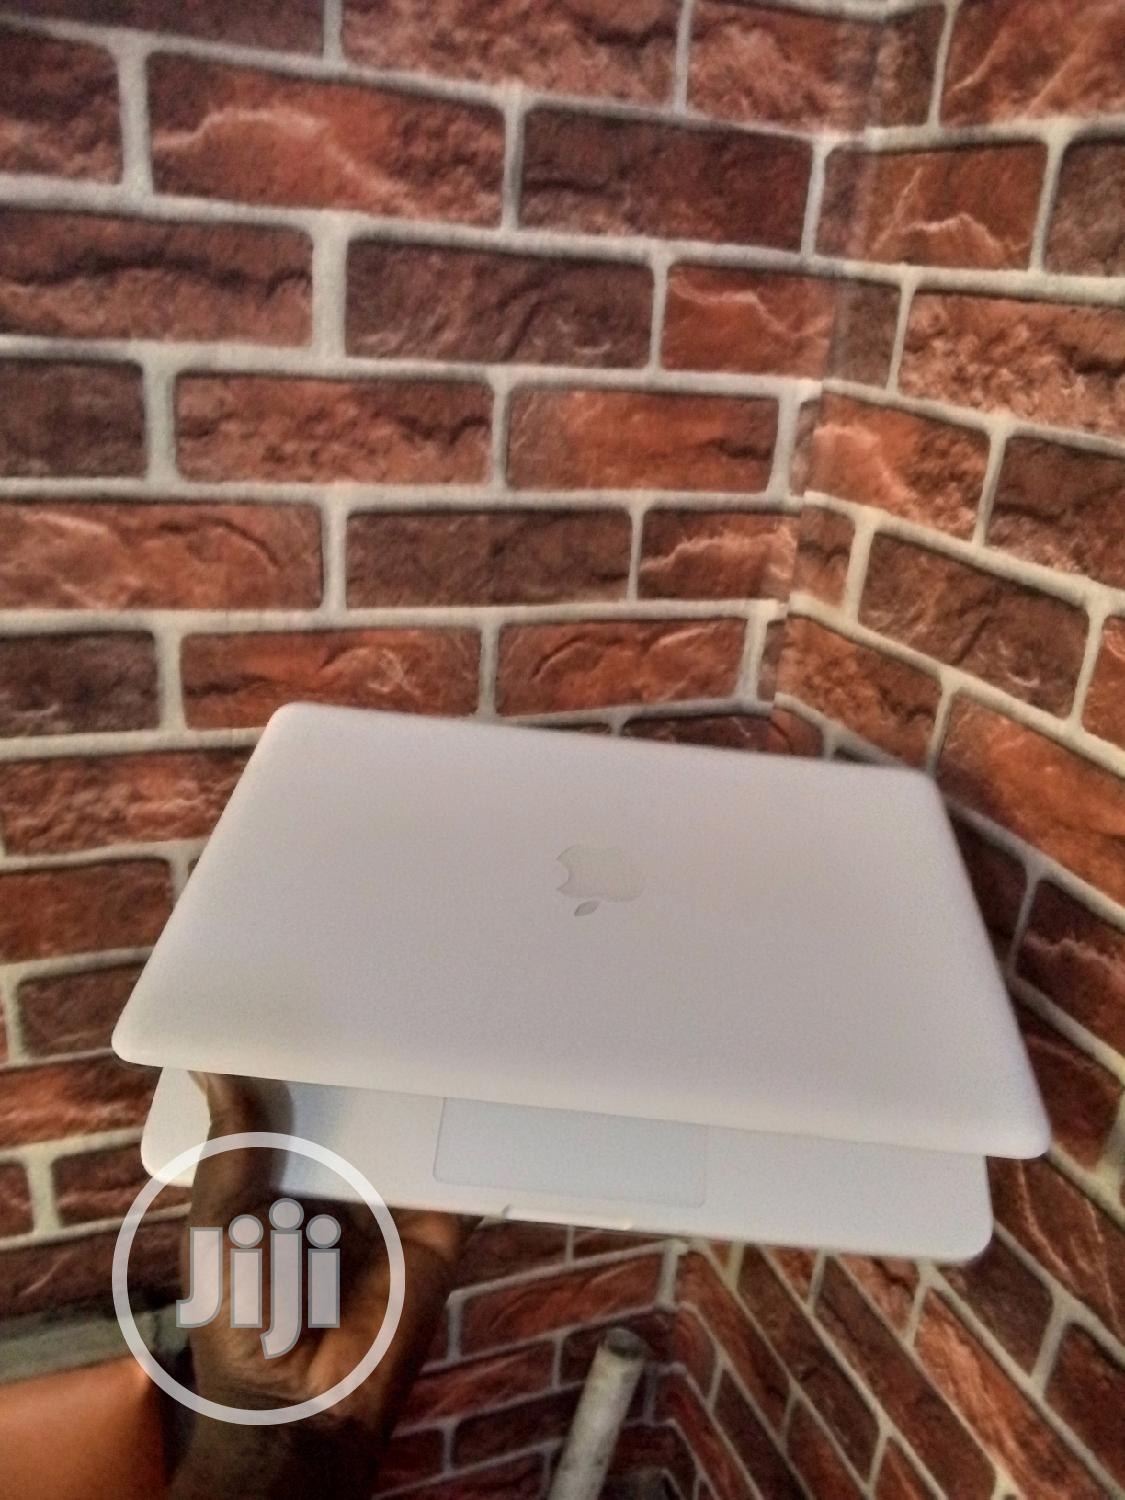 Laptop Apple MacBook 4GB Intel Core 2 Duo HDD 250GB | Laptops & Computers for sale in Ikeja, Lagos State, Nigeria